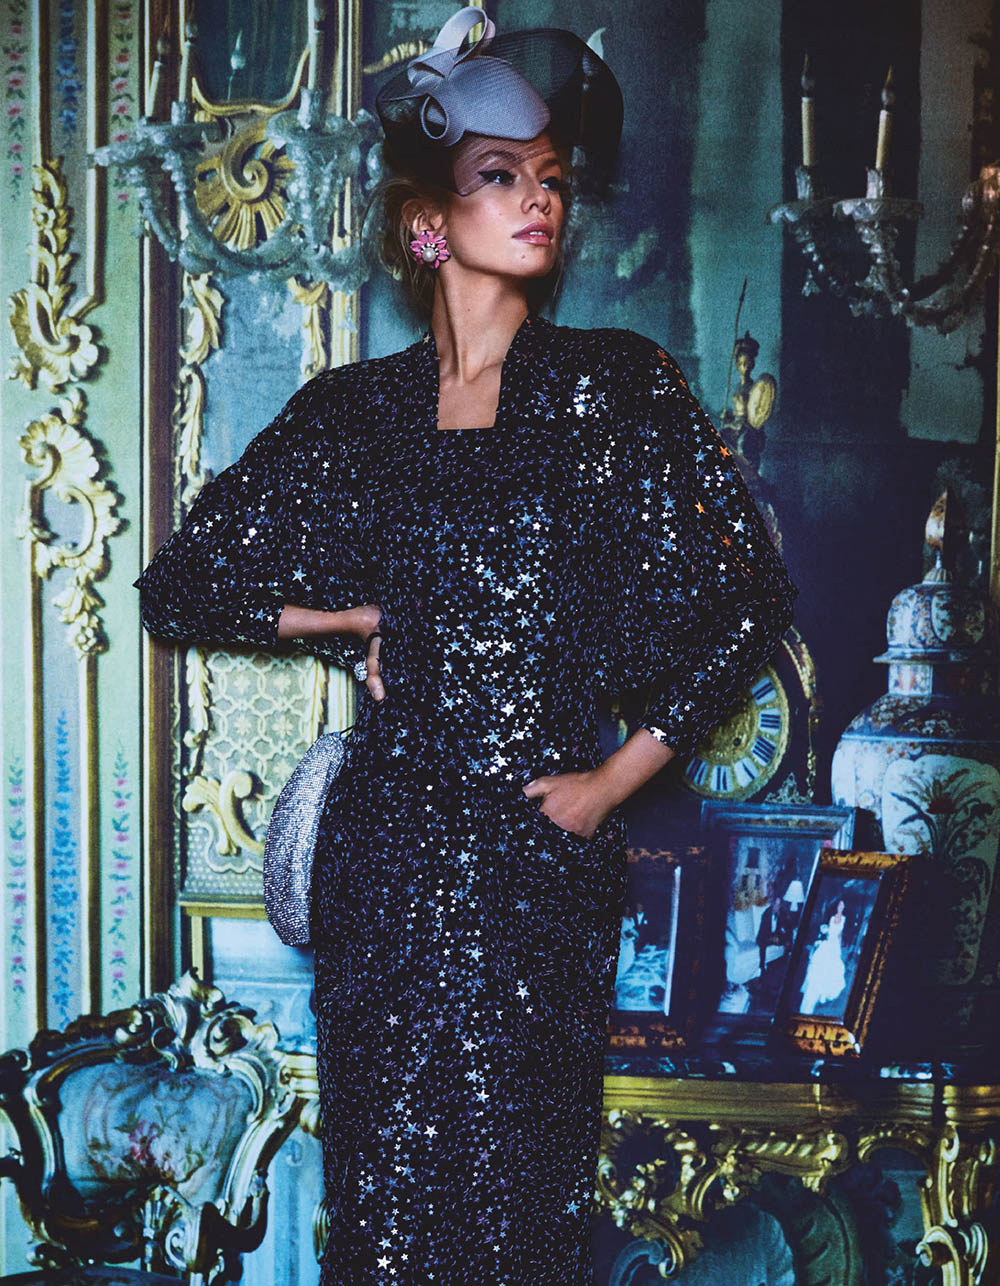 Stella Maxwell by Giulio Rustichelli for Vogue Japan May 2020